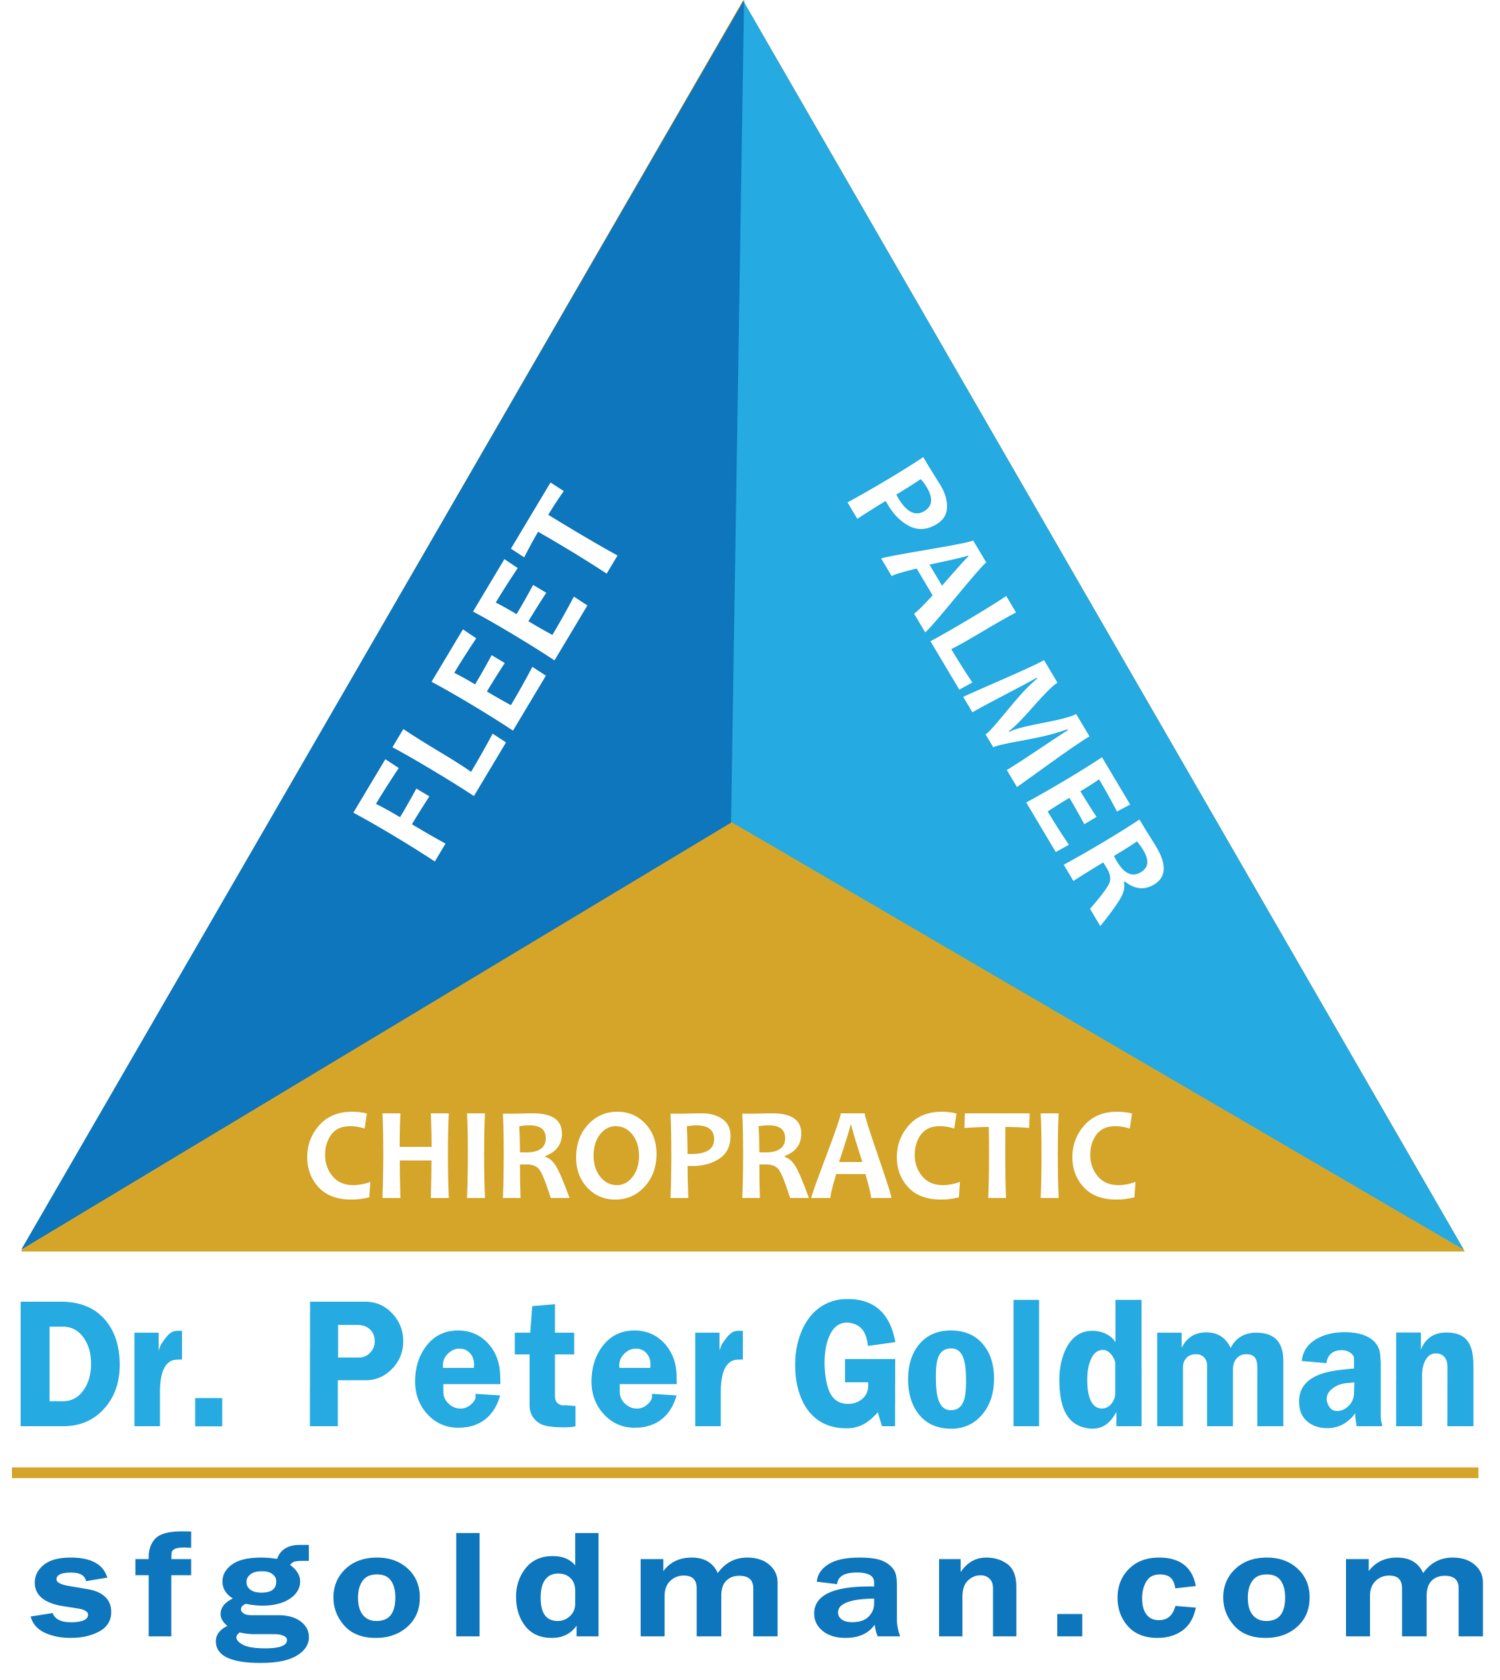 Dr. Peter Goldman — Chiropractor in San Francisco